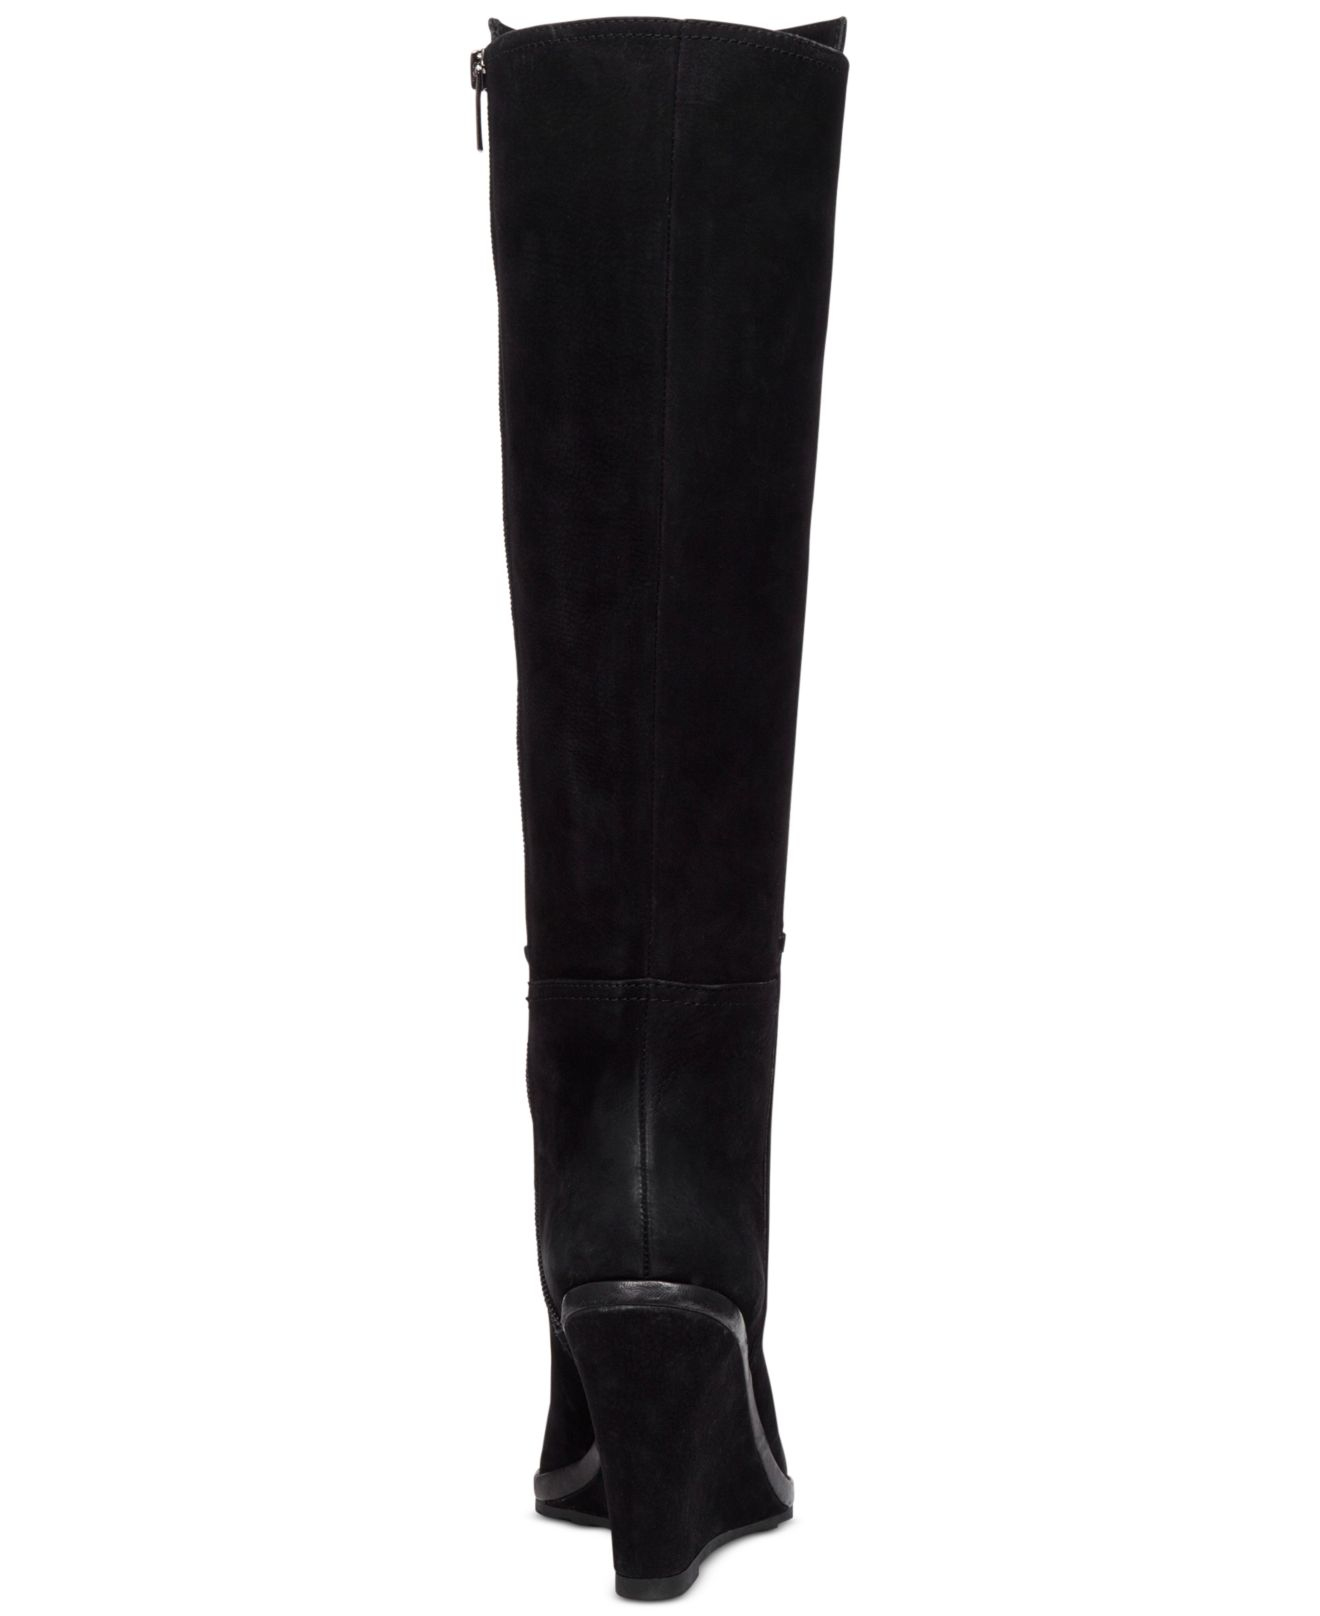 Vince camuto Justine Wedge Boots in Black   Lyst